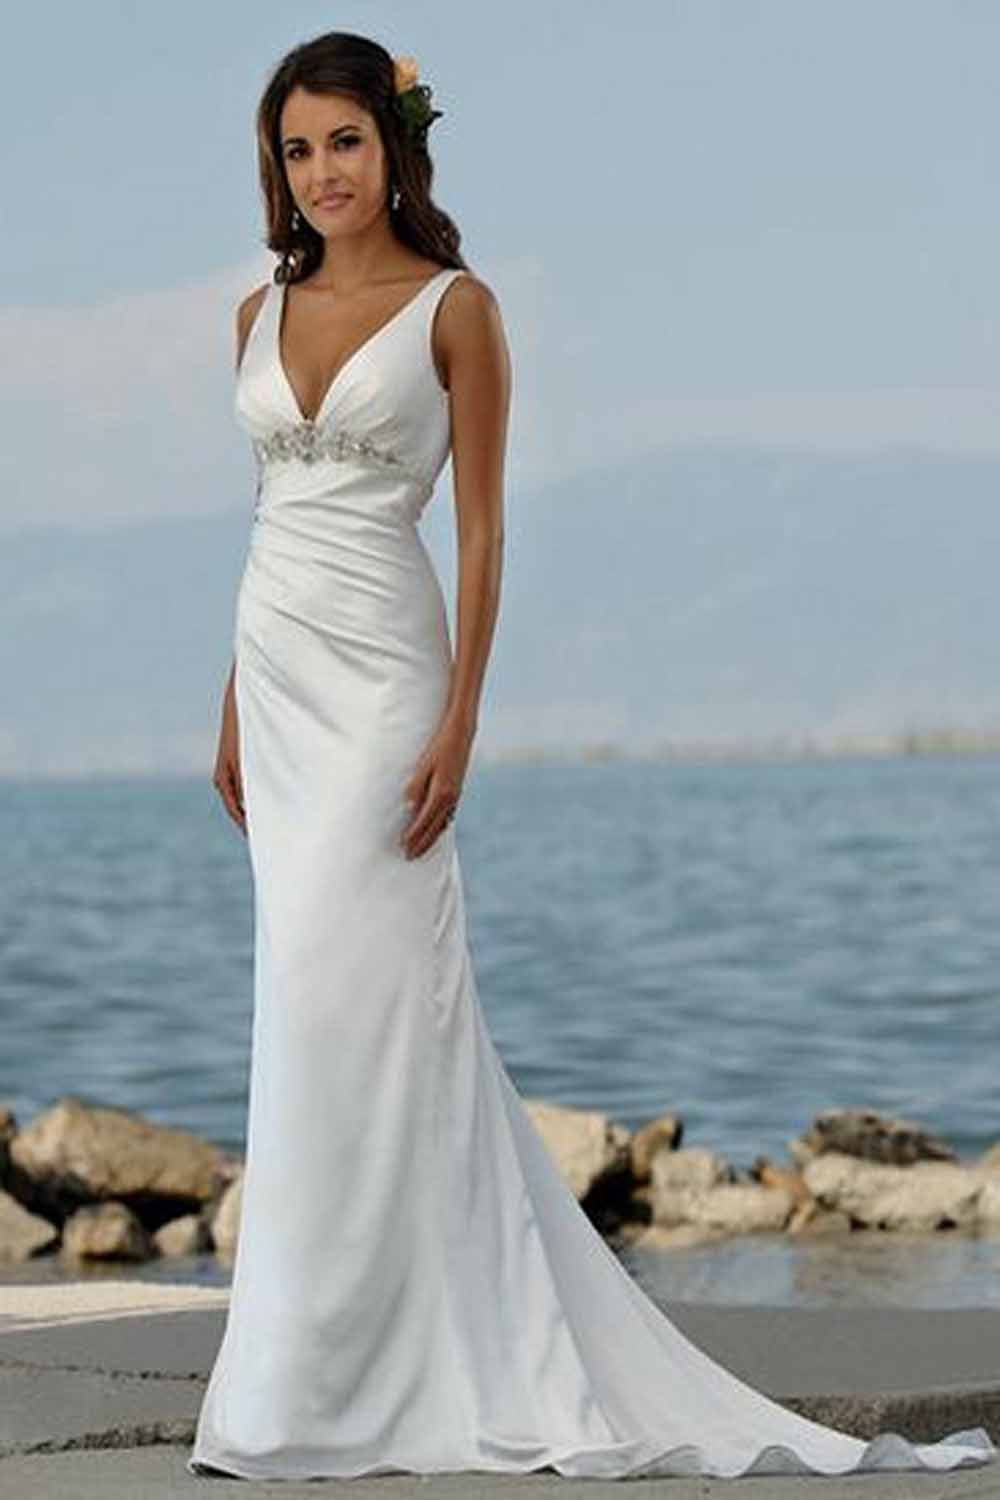 Luxury Vestidos De Novia Para Playa Photos - Wedding Dress Ideas ...